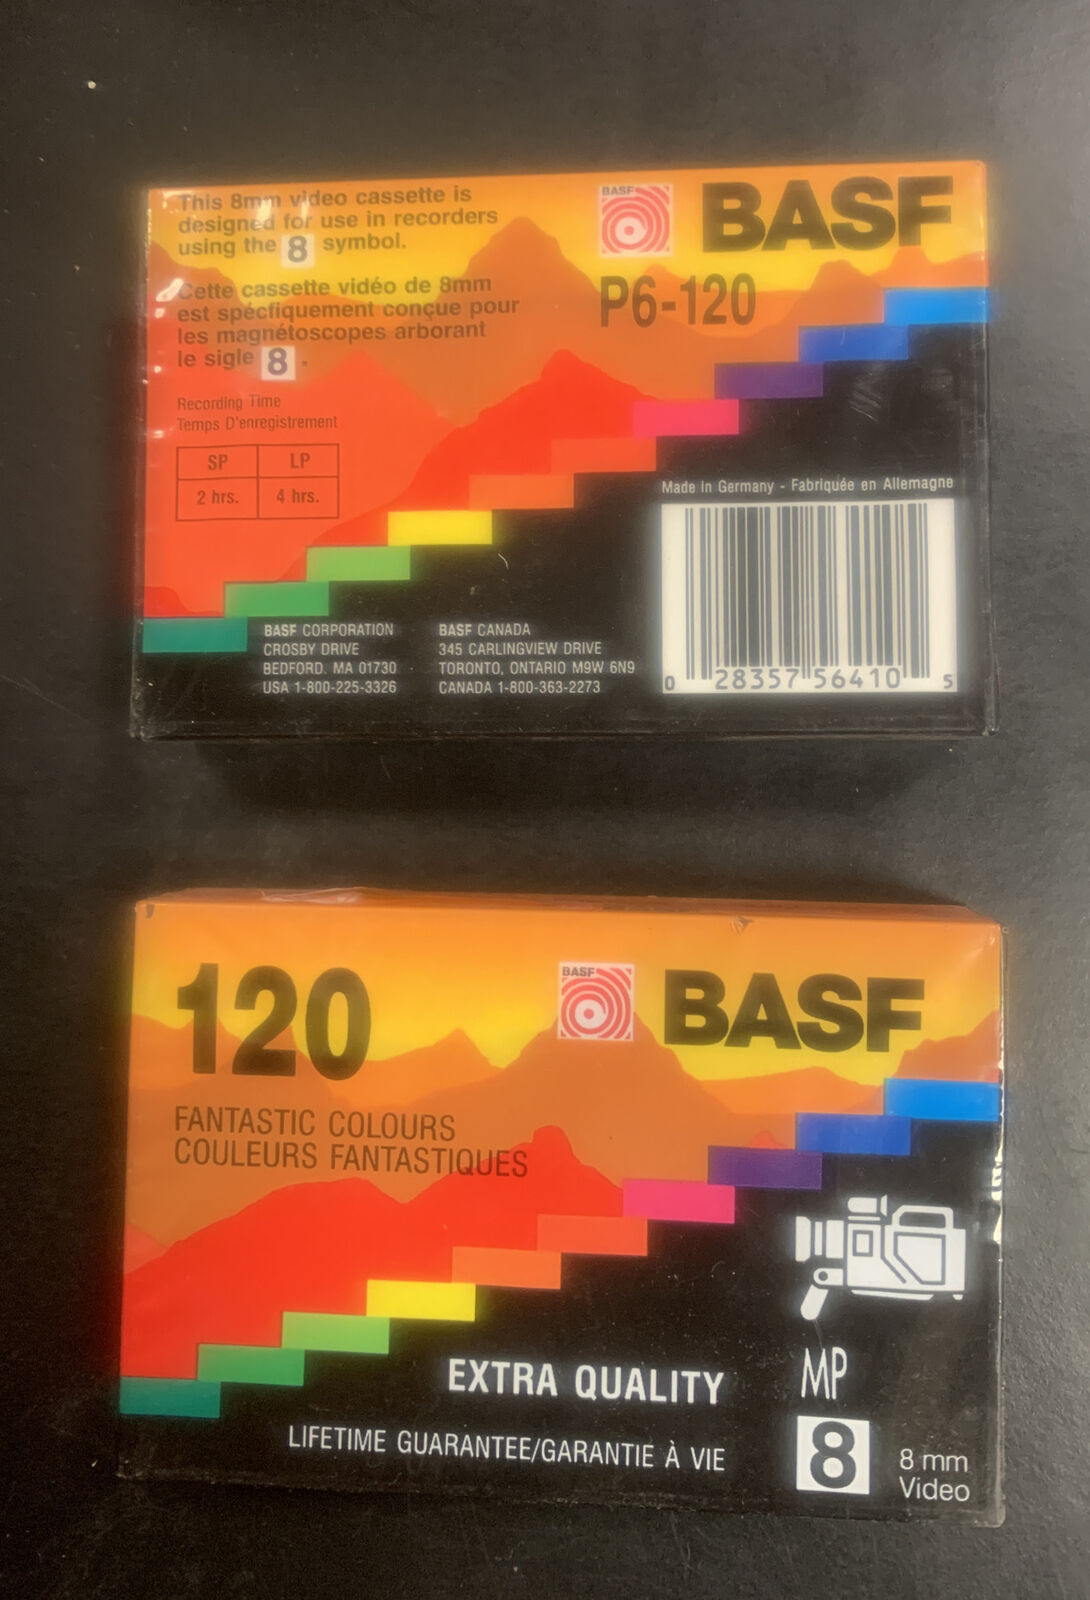 Pack of 2 BASF 8 mm Video Cassettes 120 NEW Factory Sealed extra quality